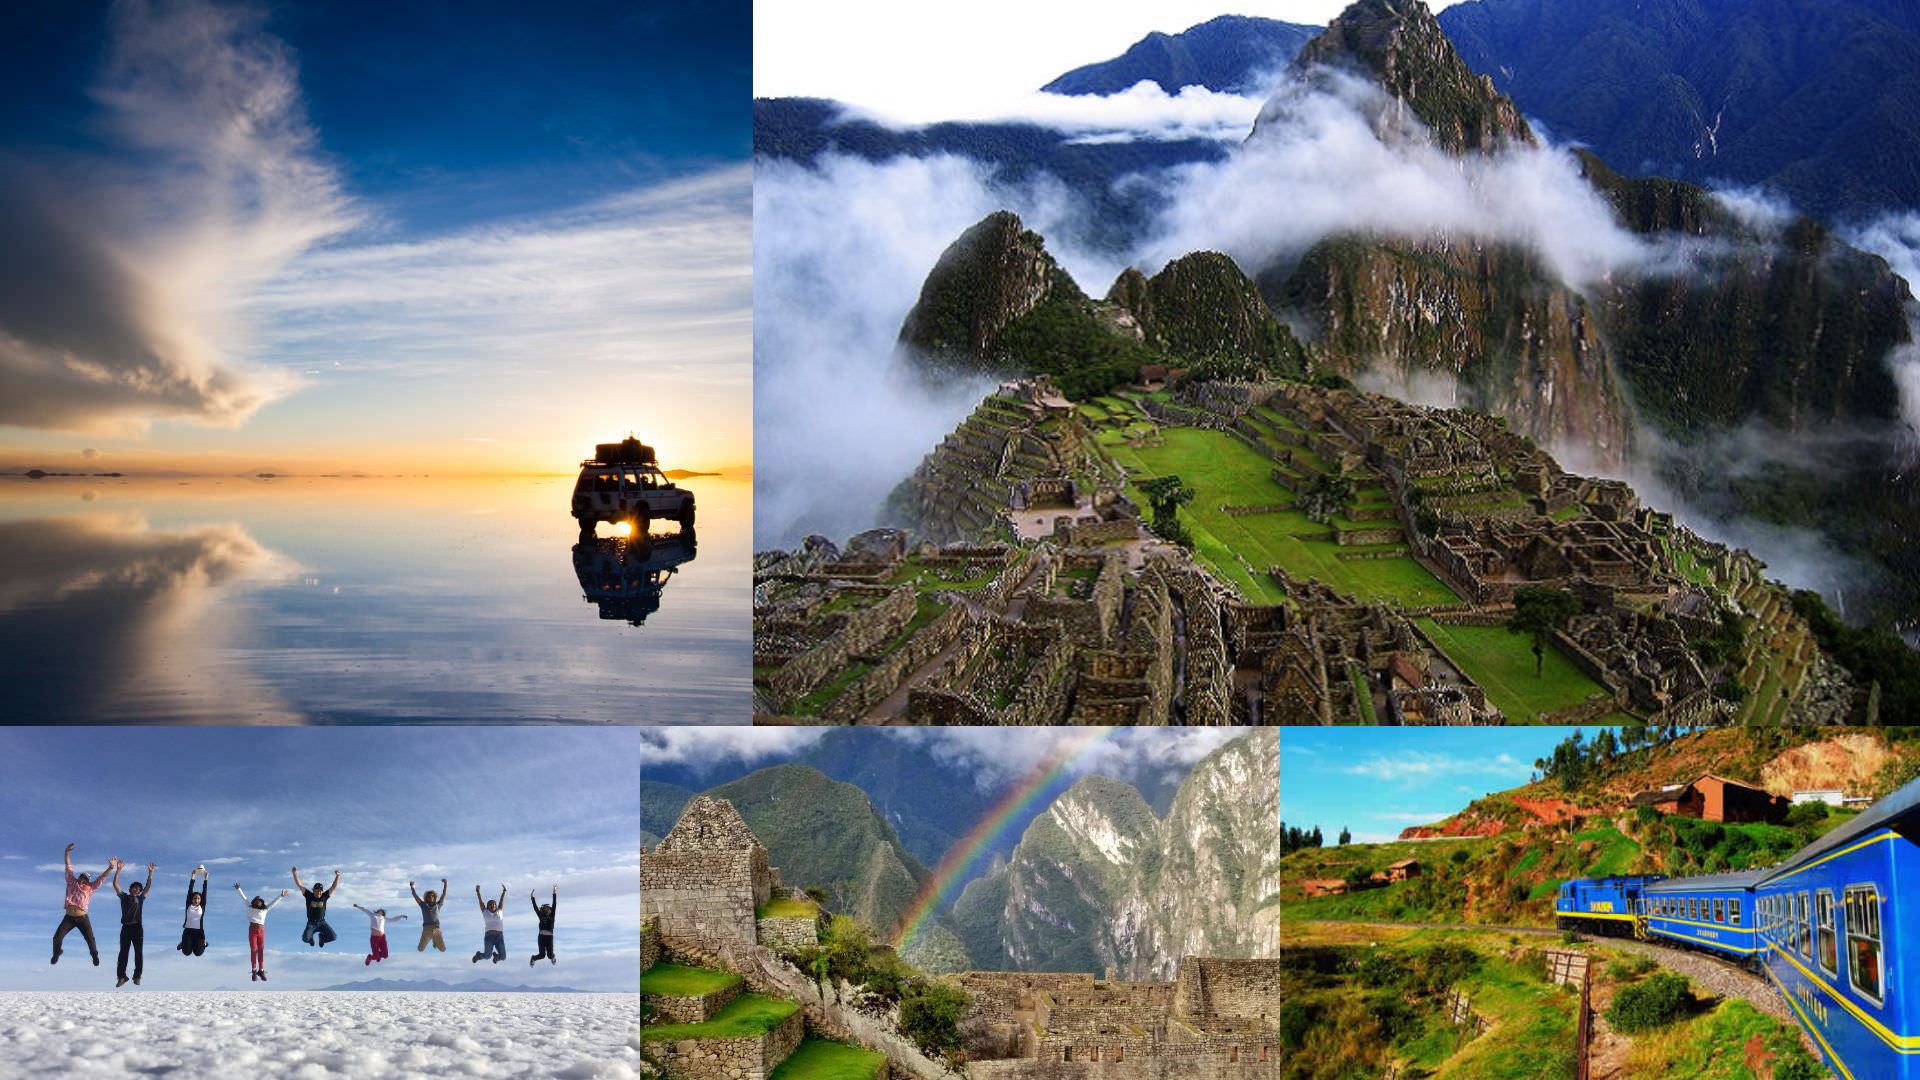 Peru and Bolivia_ the charm of the salt desert of Uyuni and the mysterious Machu Picchu post thumbnail image